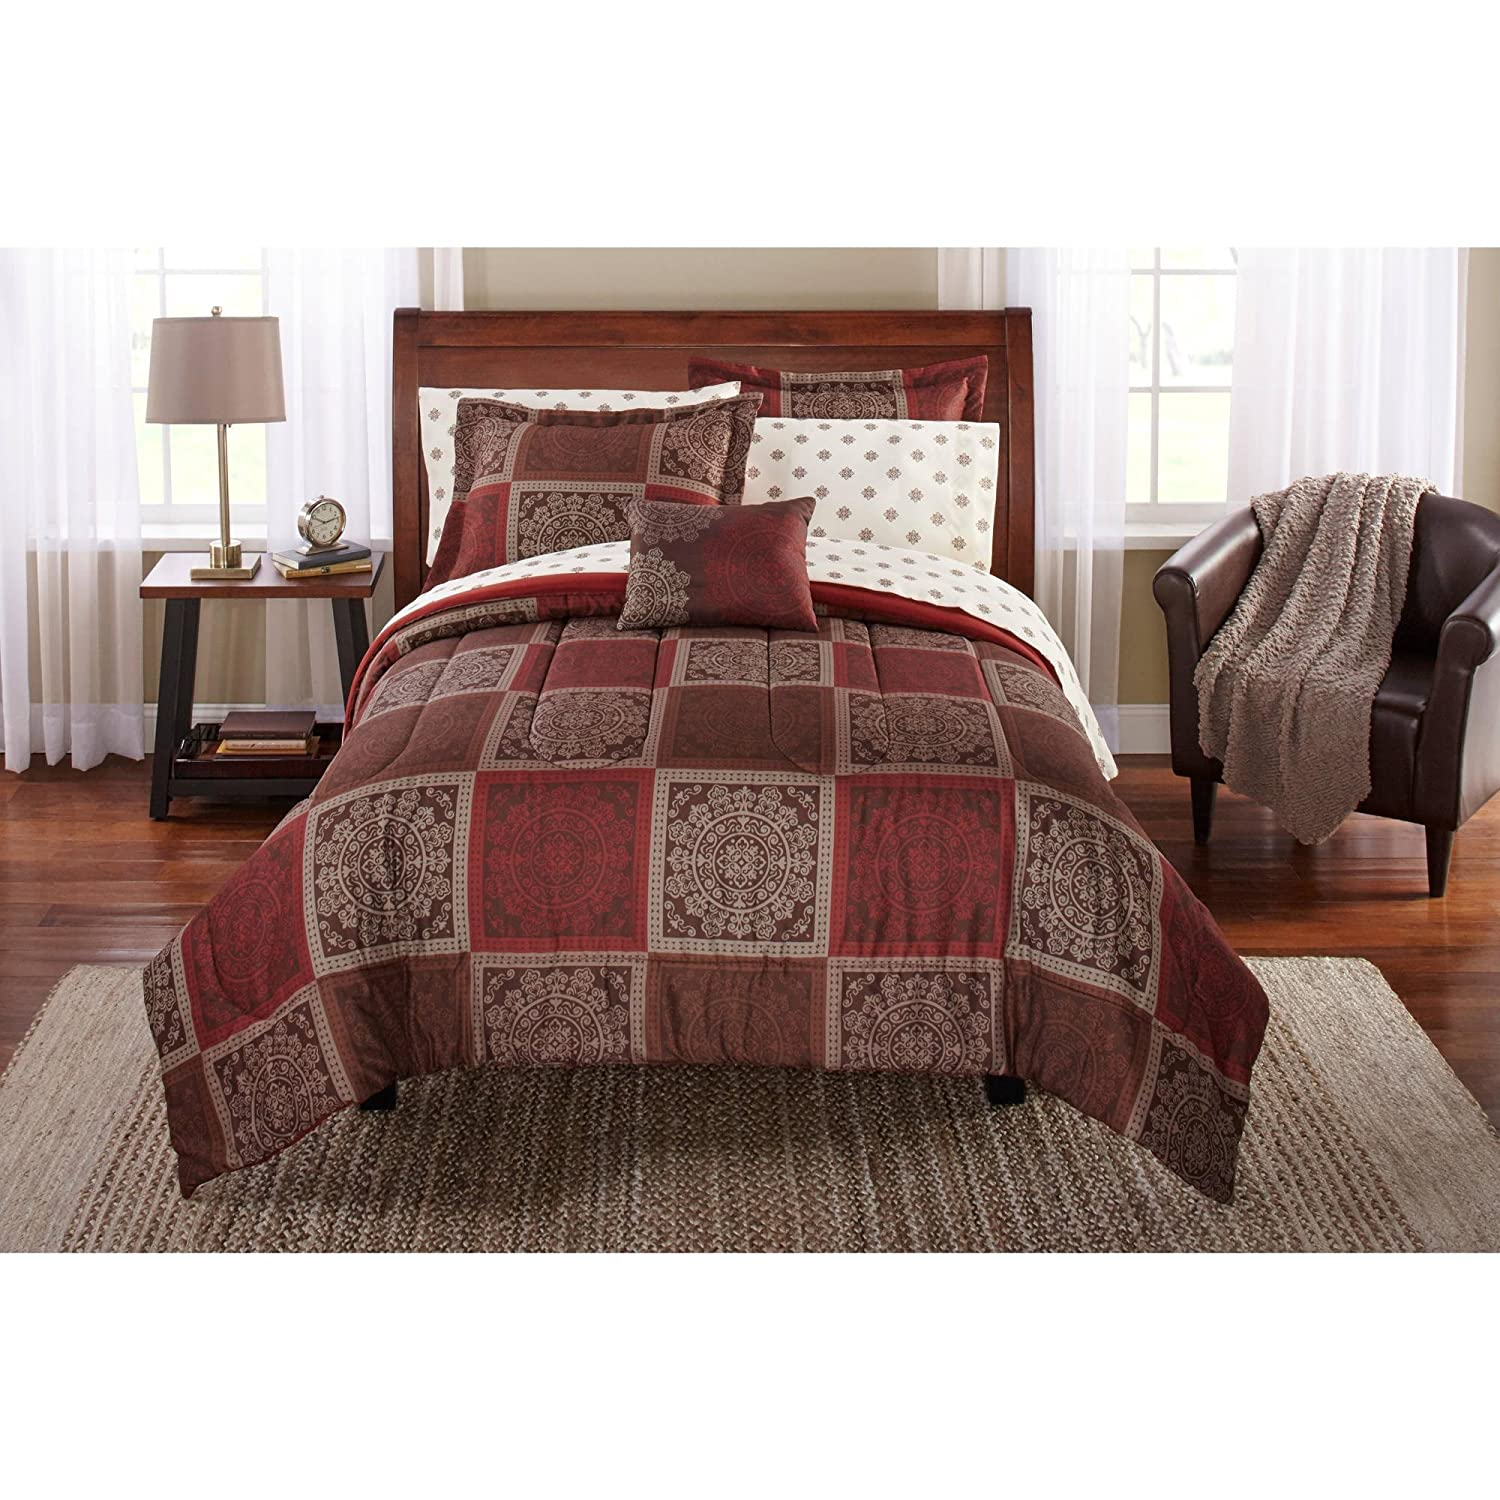 Mainstays Bed in a Bag Bedding Comforter Set, Tiles Design, QUEEN Set, Brown & Burgundy Color